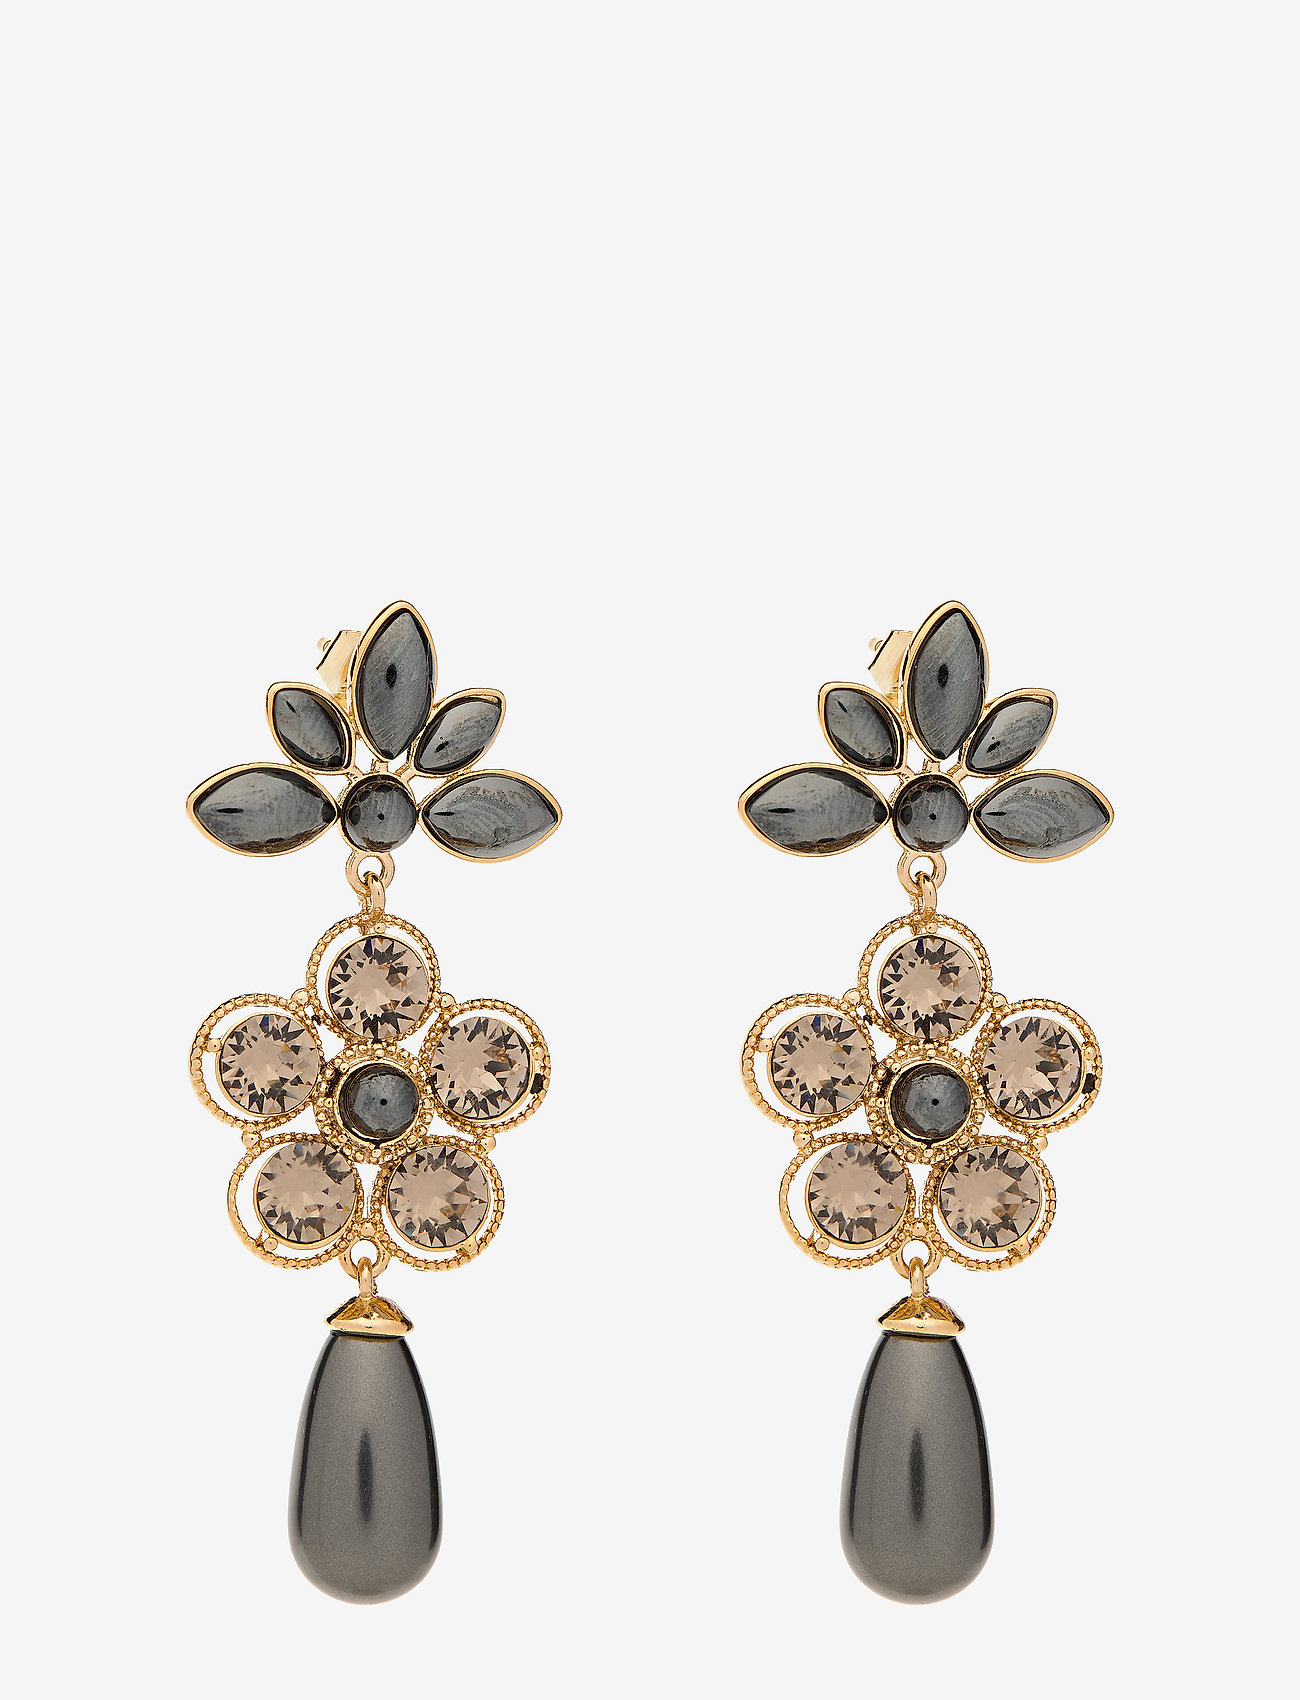 LILY AND ROSE - Aurora pearl earrings - Black pearl - statement - black pearl